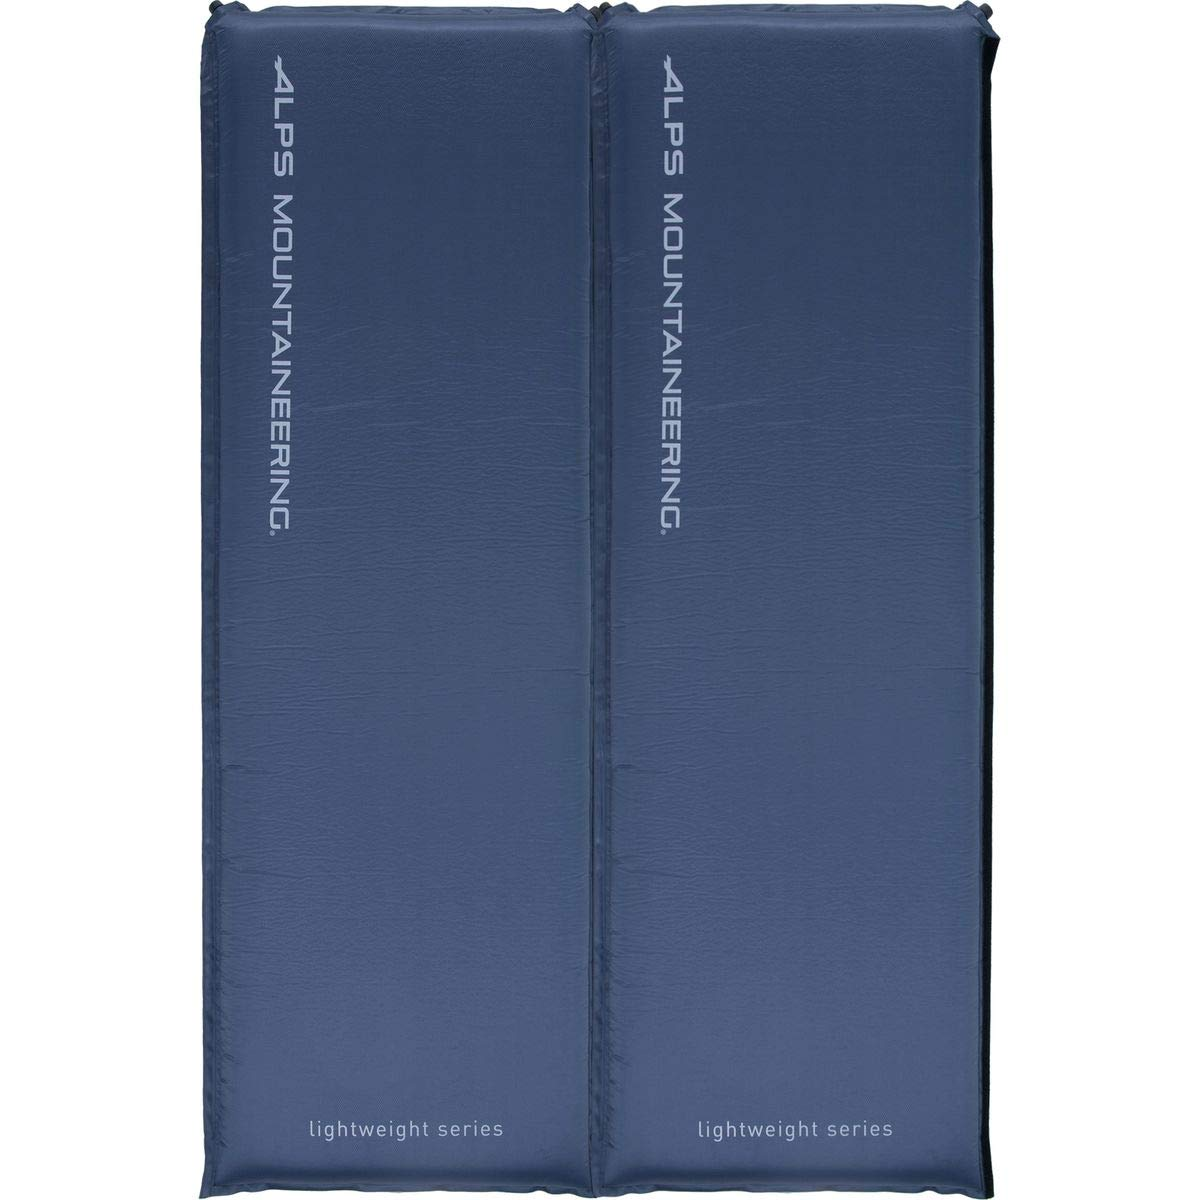 ALPS Mountaineering Lightweight Series Self-Inflating Air Pad-Double by ALPS Mountaineering